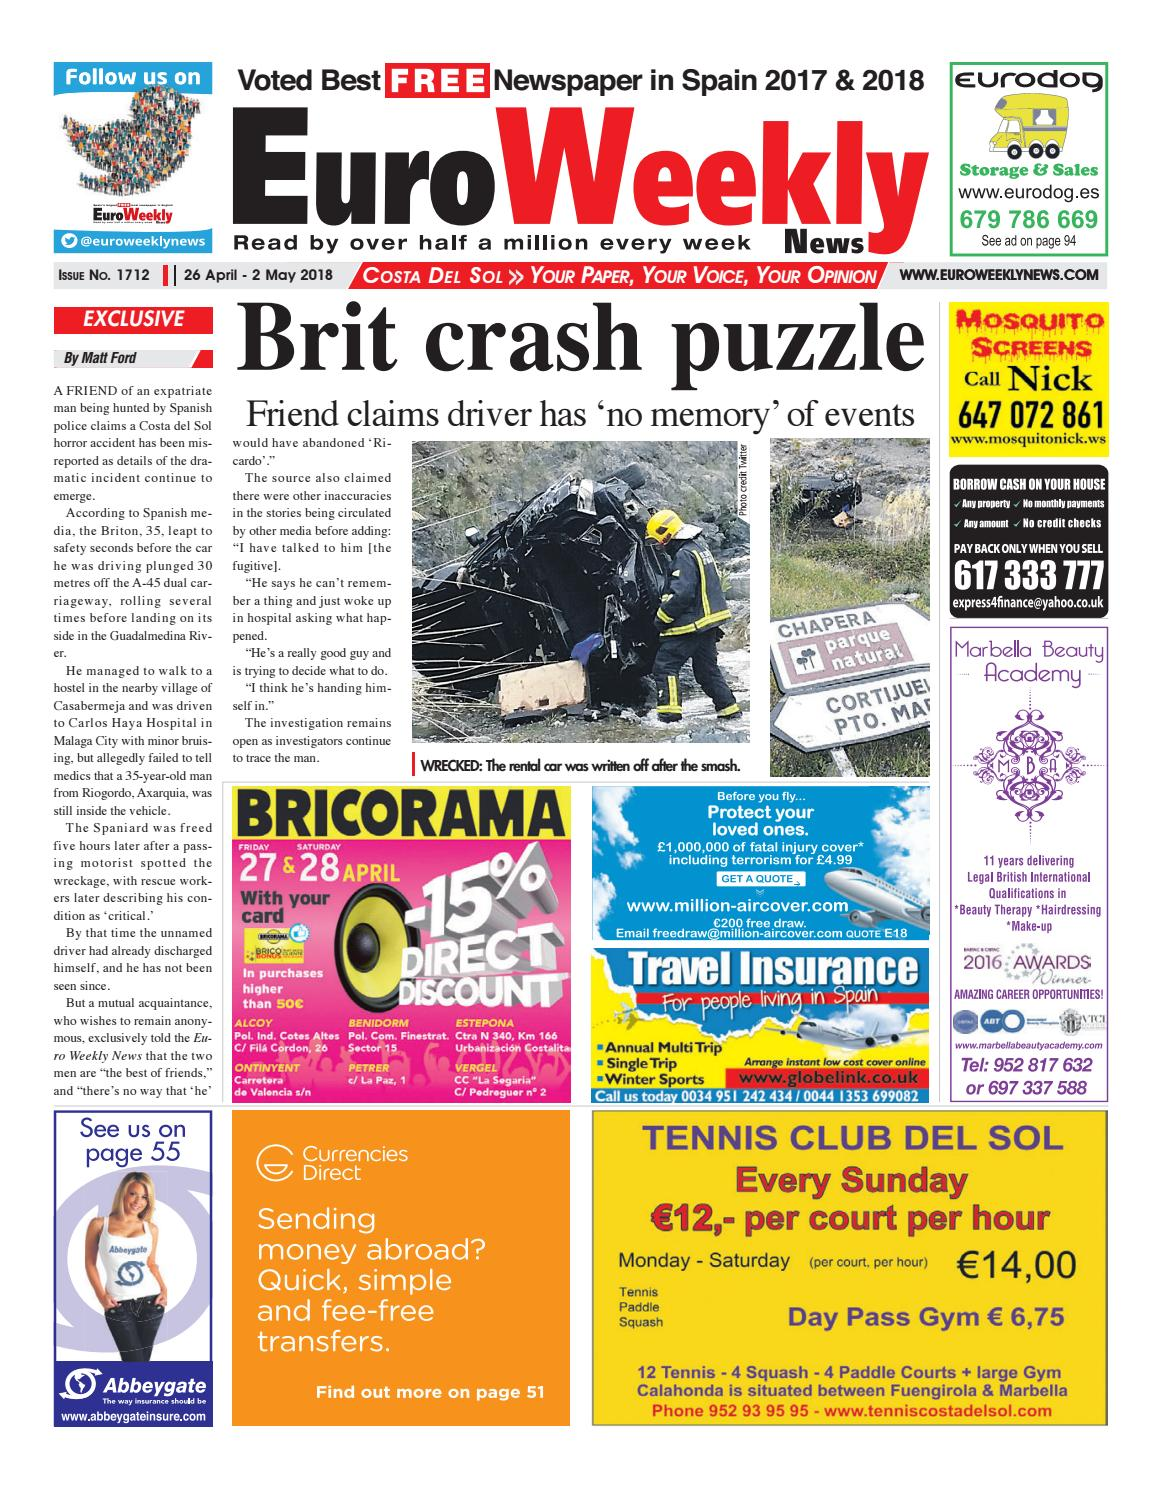 Euro weekly news costa del sol 26 april 2 may 2018 issue 1712 by euro weekly news costa del sol 26 april 2 may 2018 issue 1712 by euro weekly news media sa issuu fandeluxe Images